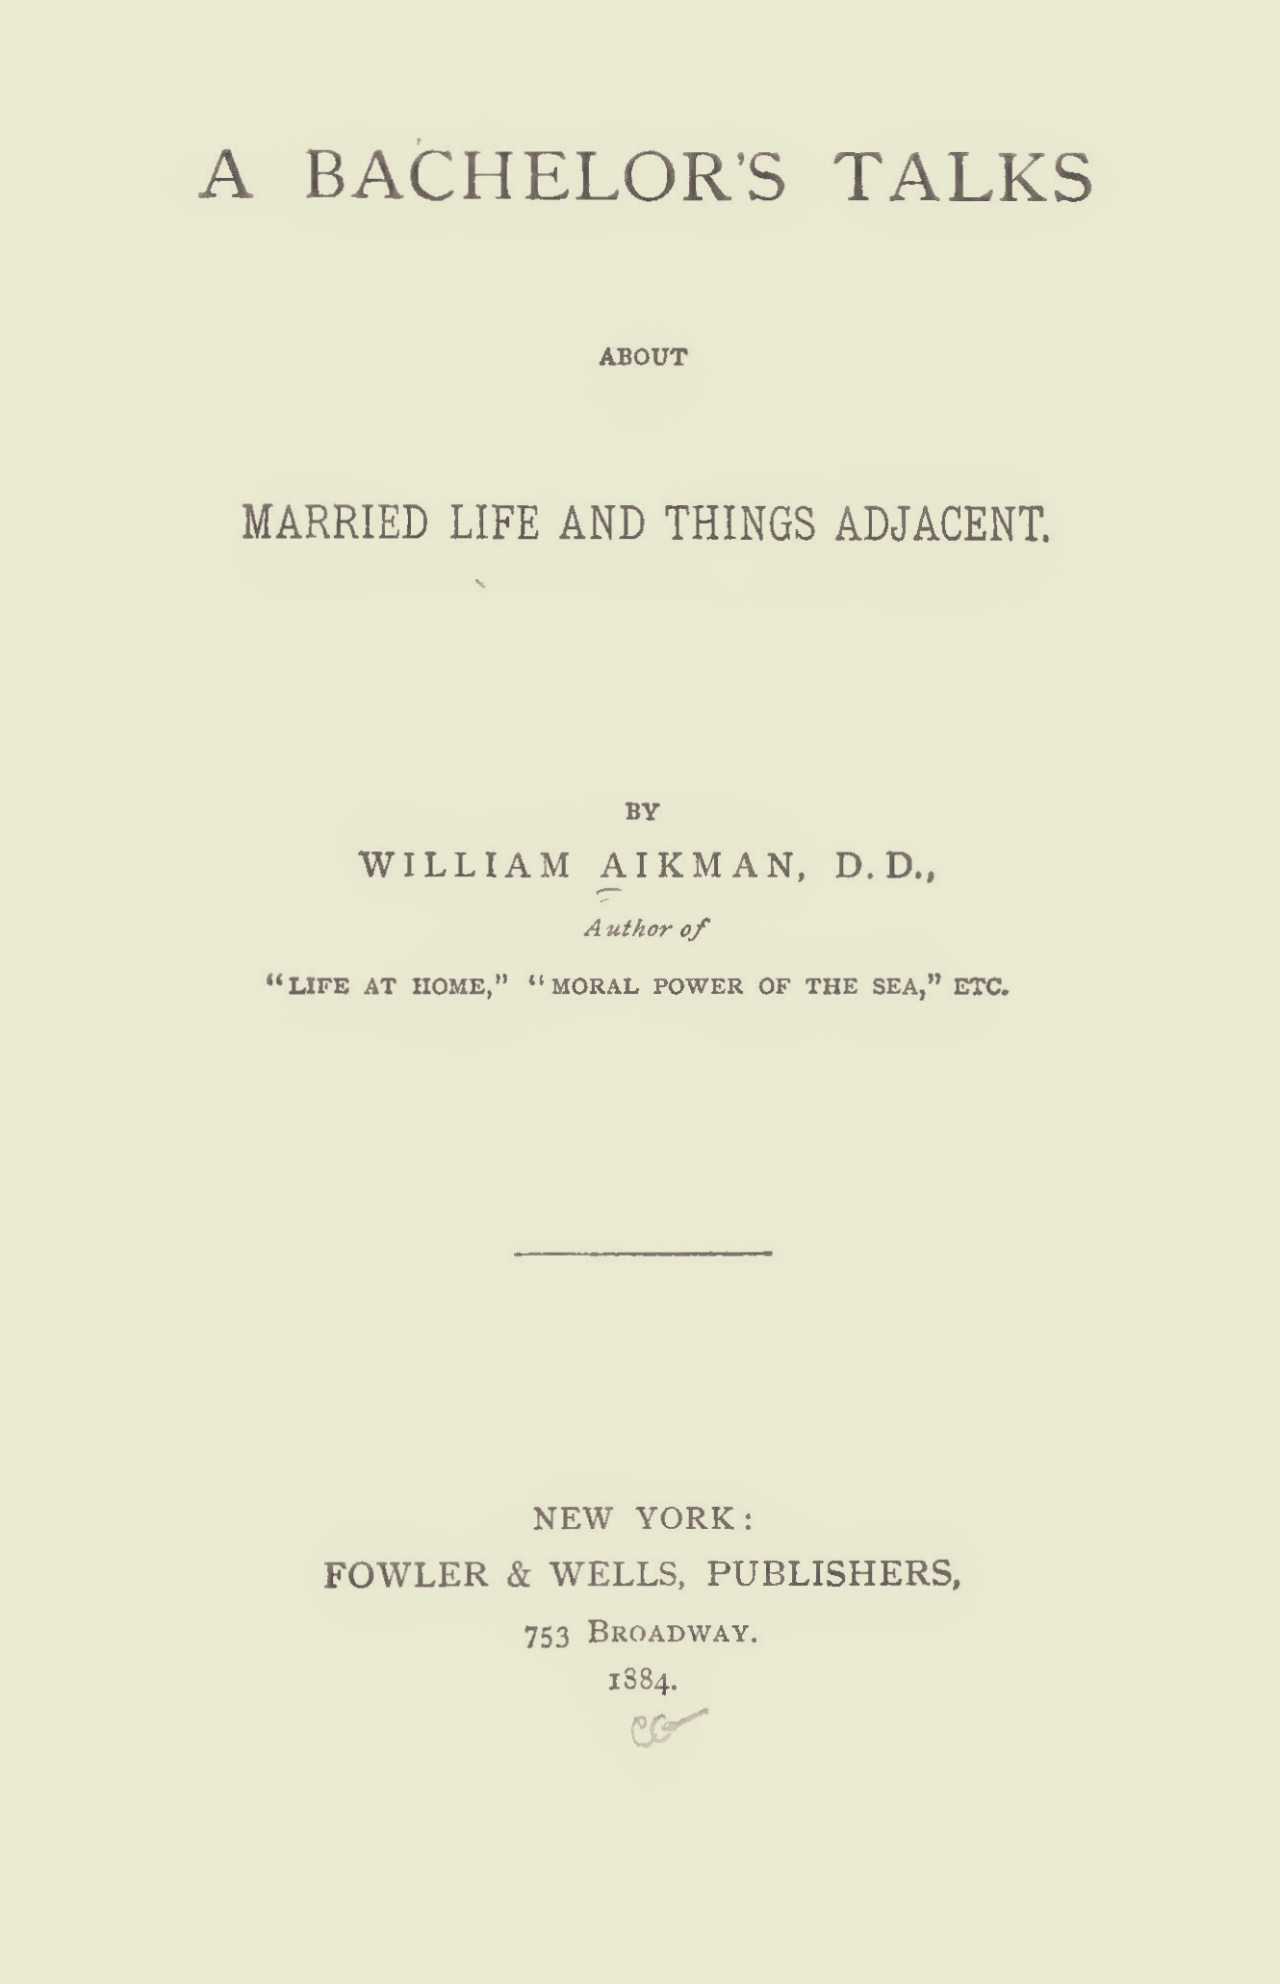 Aikman, William, A Bachelor's Talks Title Page.jpg